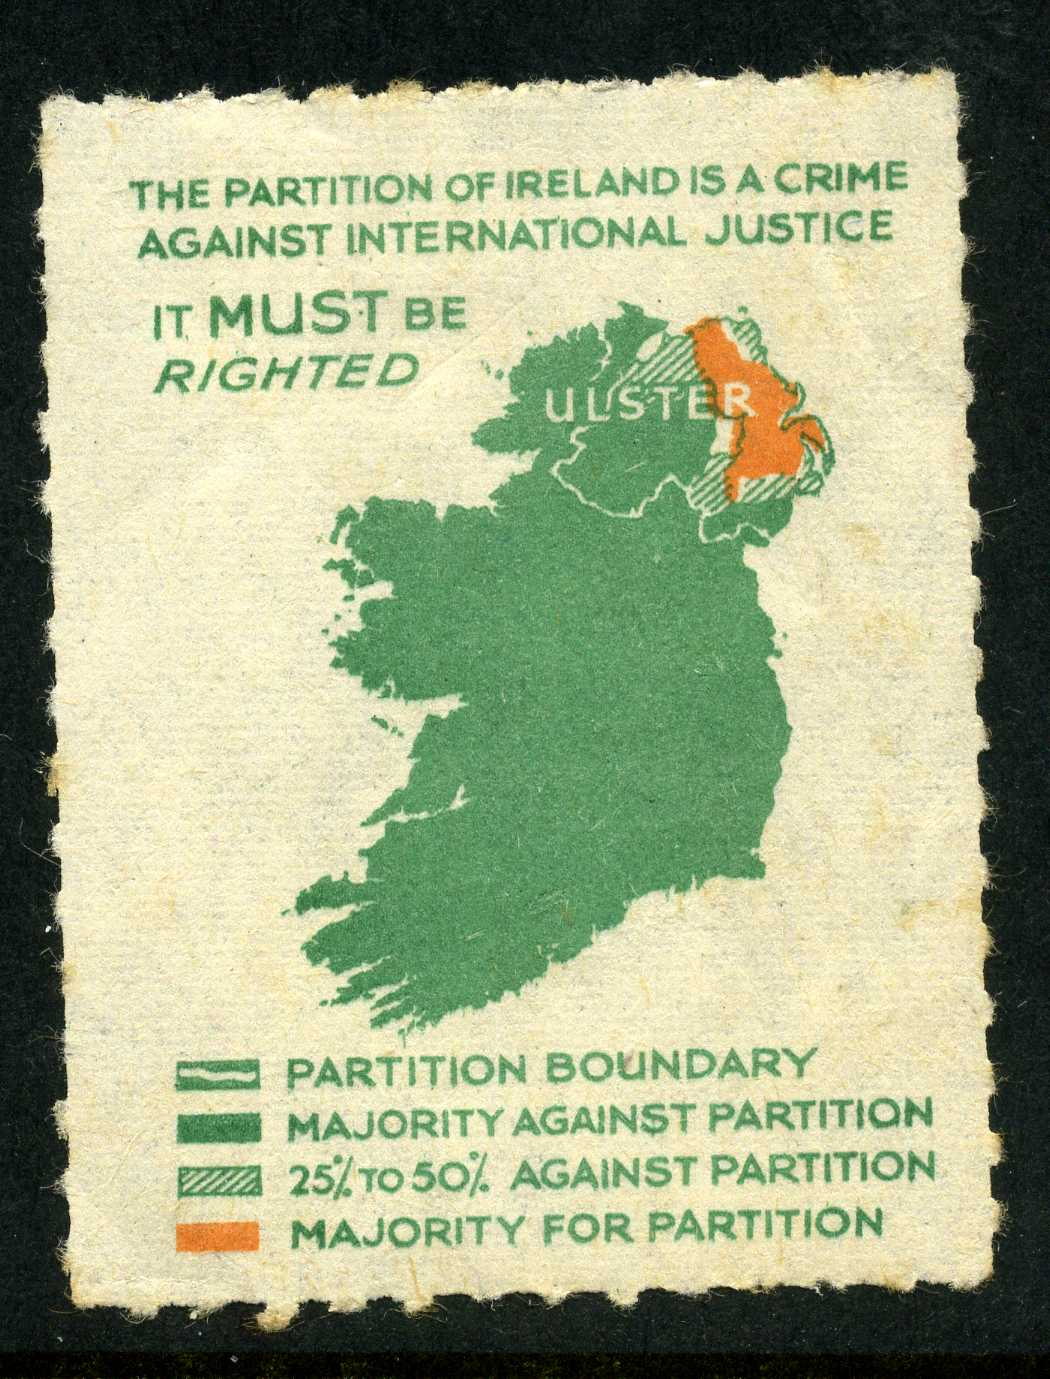 Partition is wrong in ukraine but right in ireland an sionnach fionn a stamp produced by the anti partition of ireland league in the 1940s illustrating the solutioingenieria Image collections